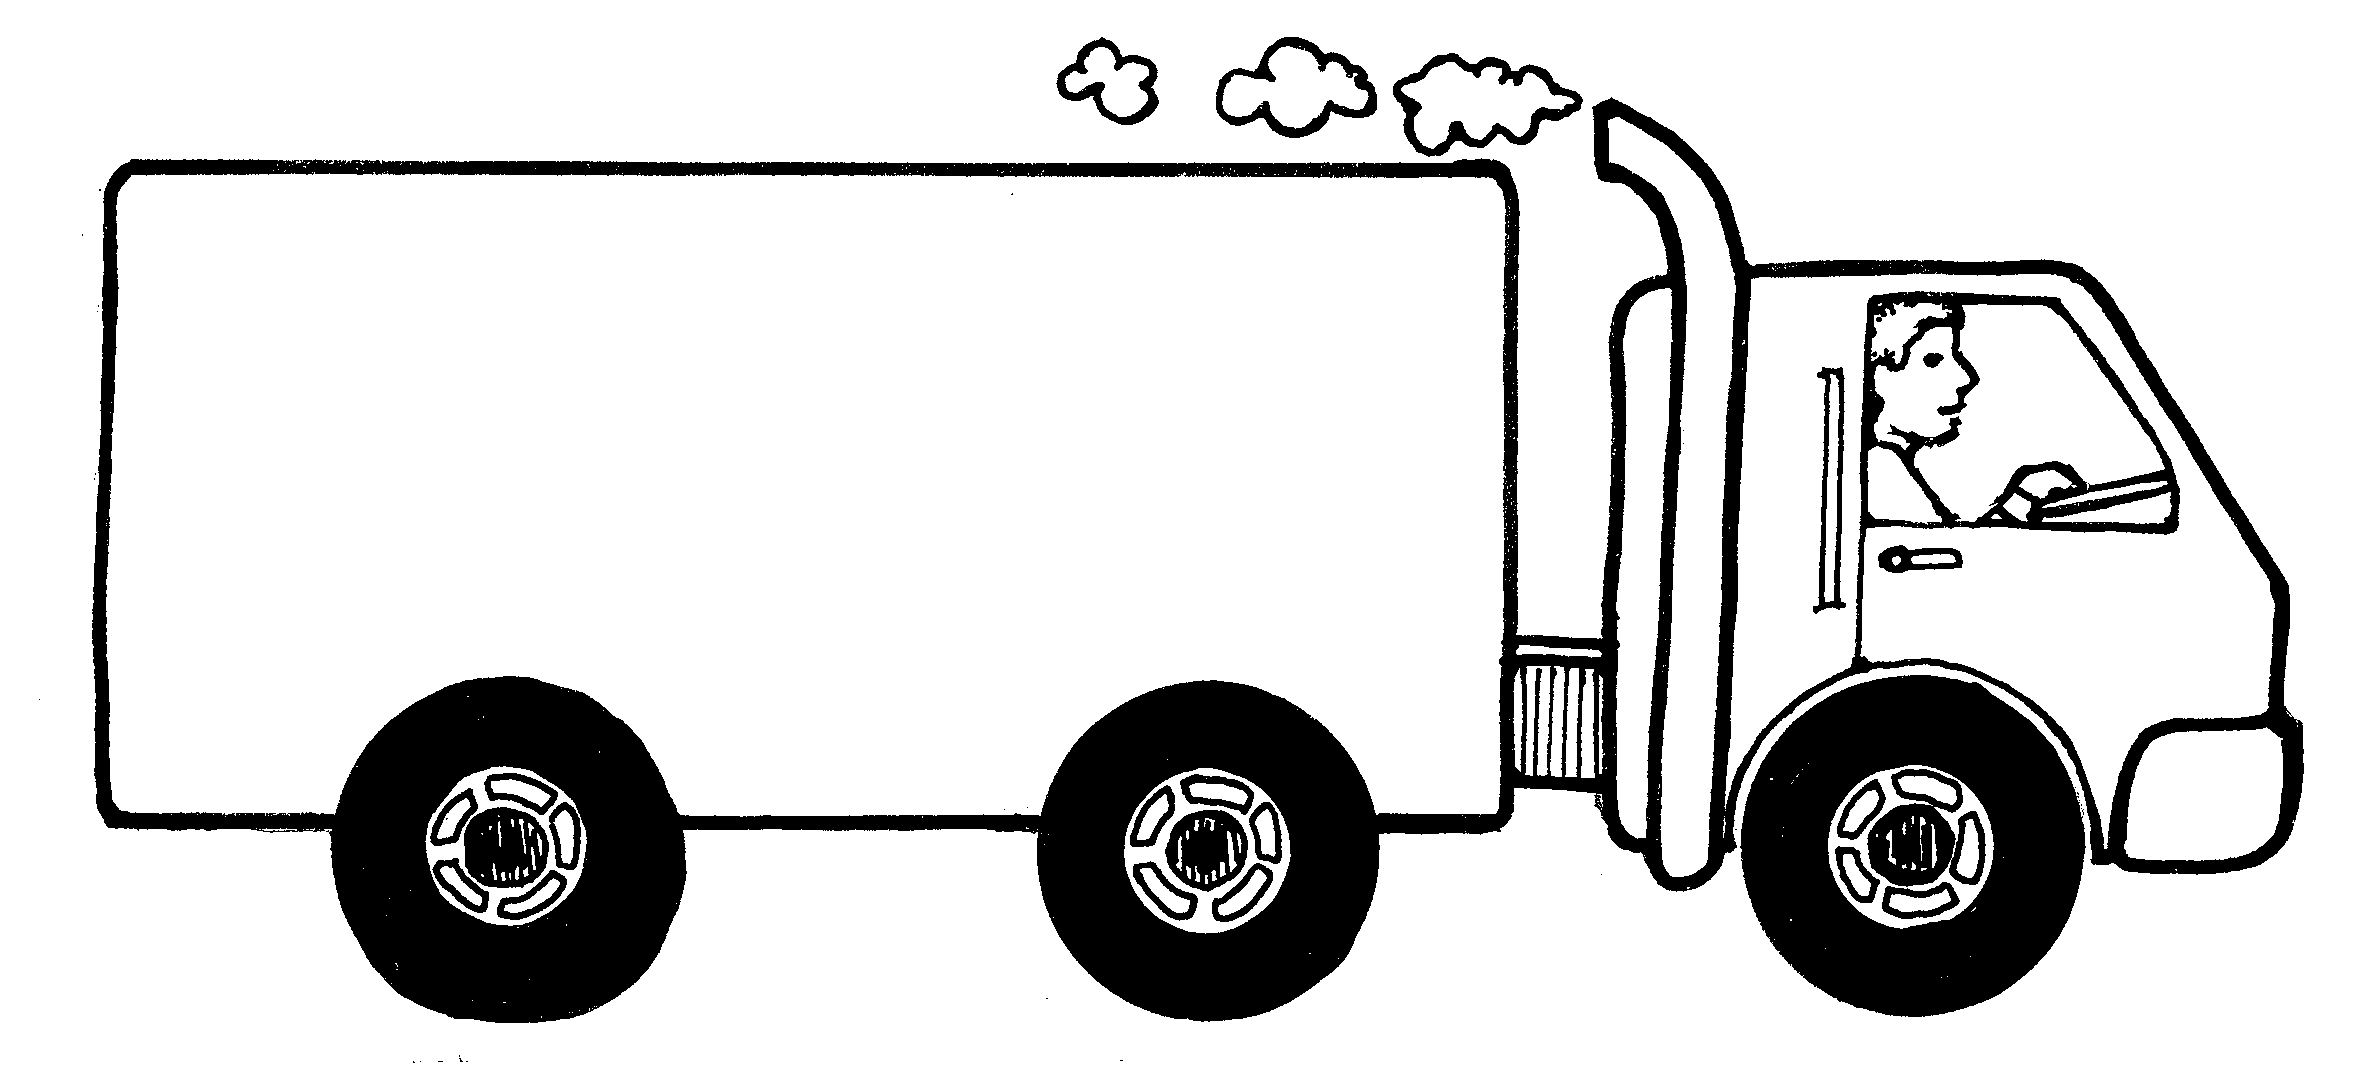 53 images of Moving Van Clipart . You can use these free cliparts for ...